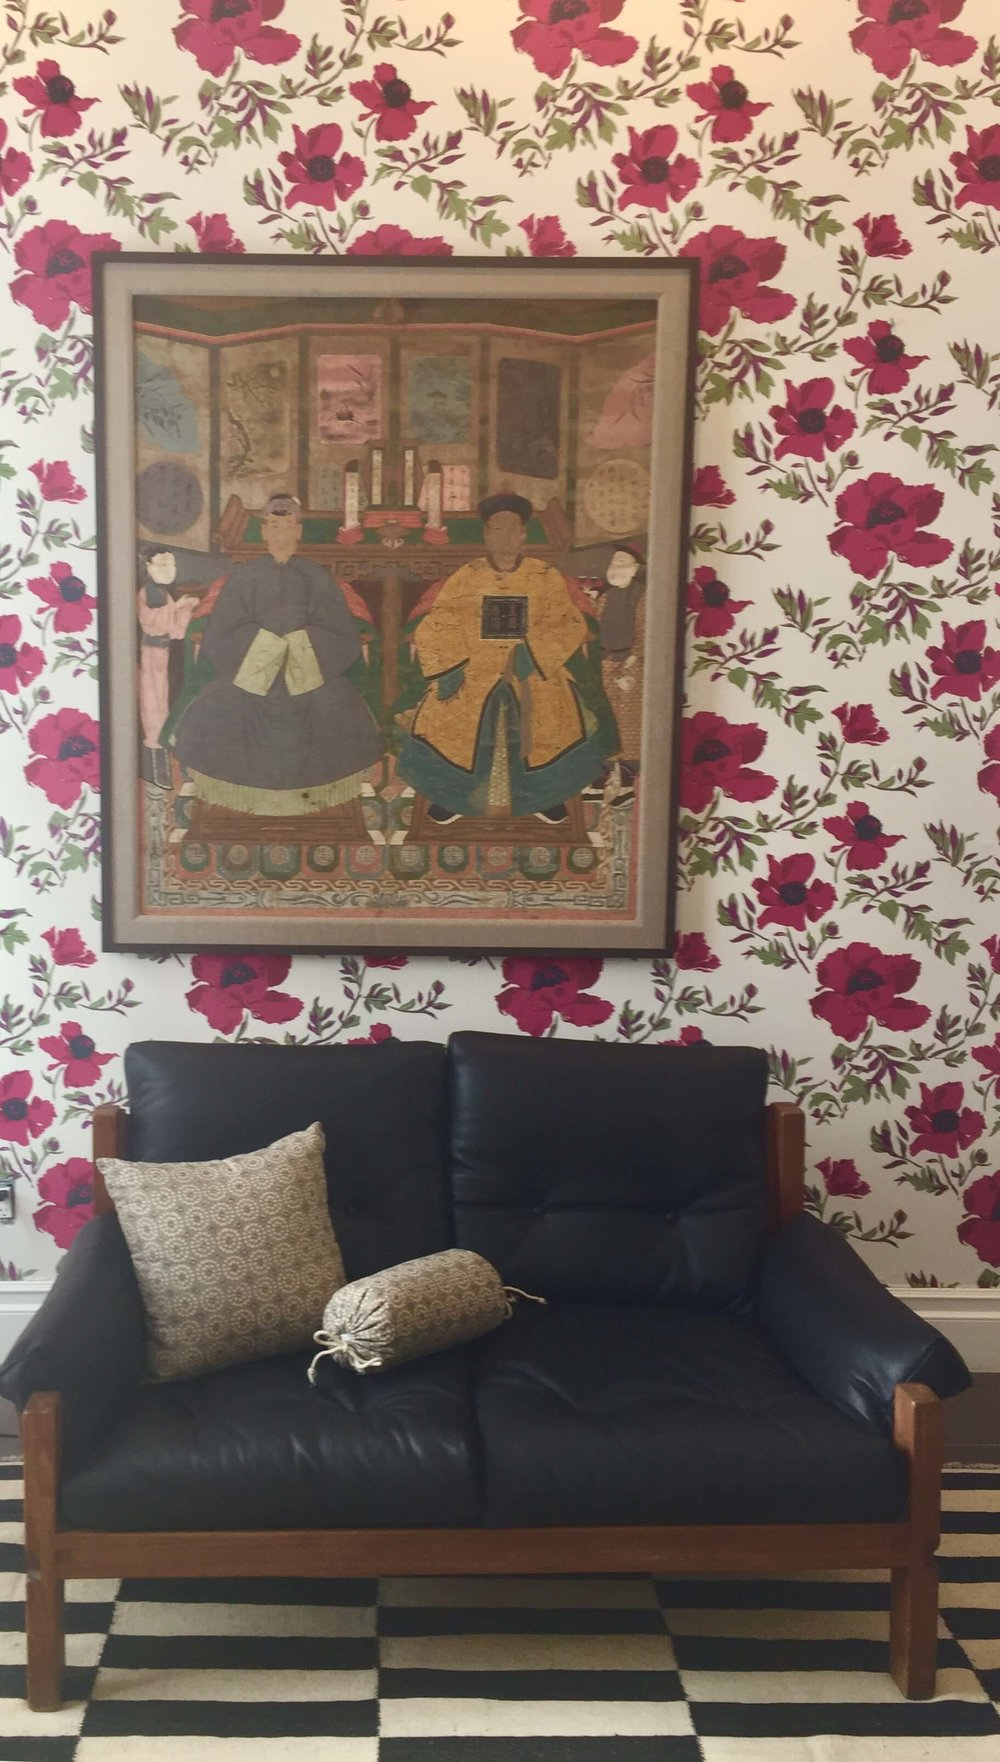 Hollywood at Home, Los Angeles home furnishings shop with floral wallpaper and black leather vintage sofa #floralwallpaper #leathersofa #vintagesofa